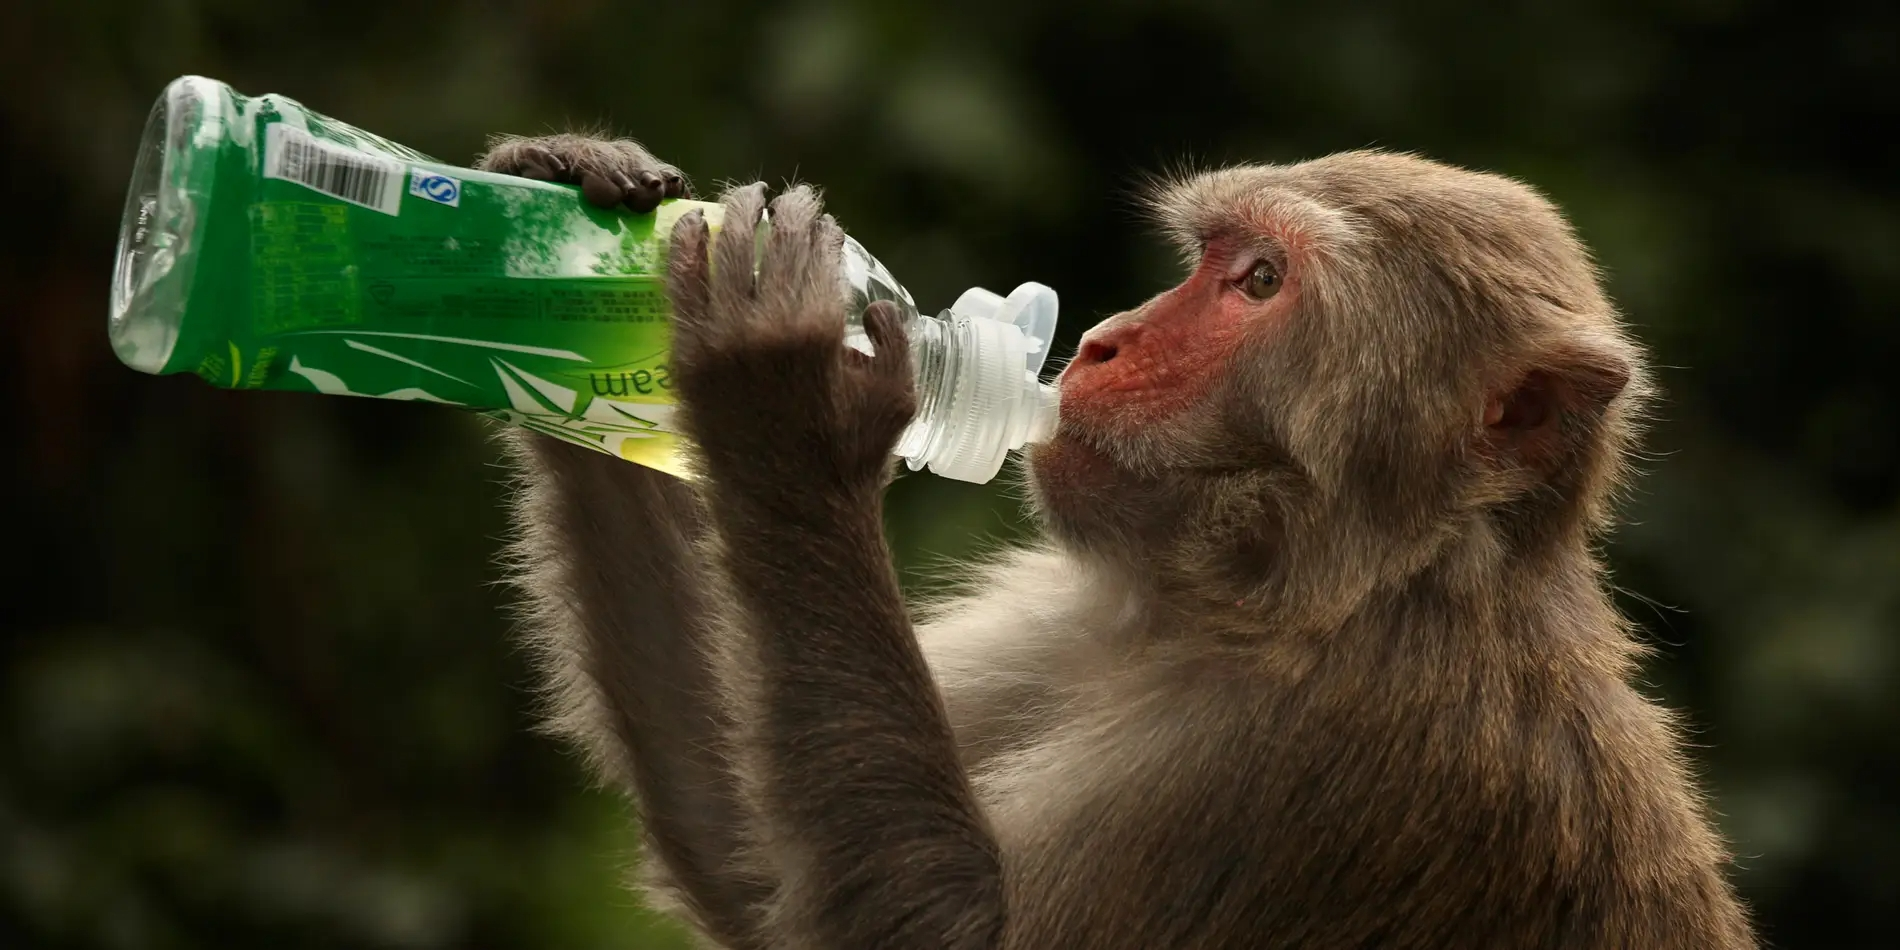 Oxford-developed vaccine appears to shield monkey from coronavirusinfection